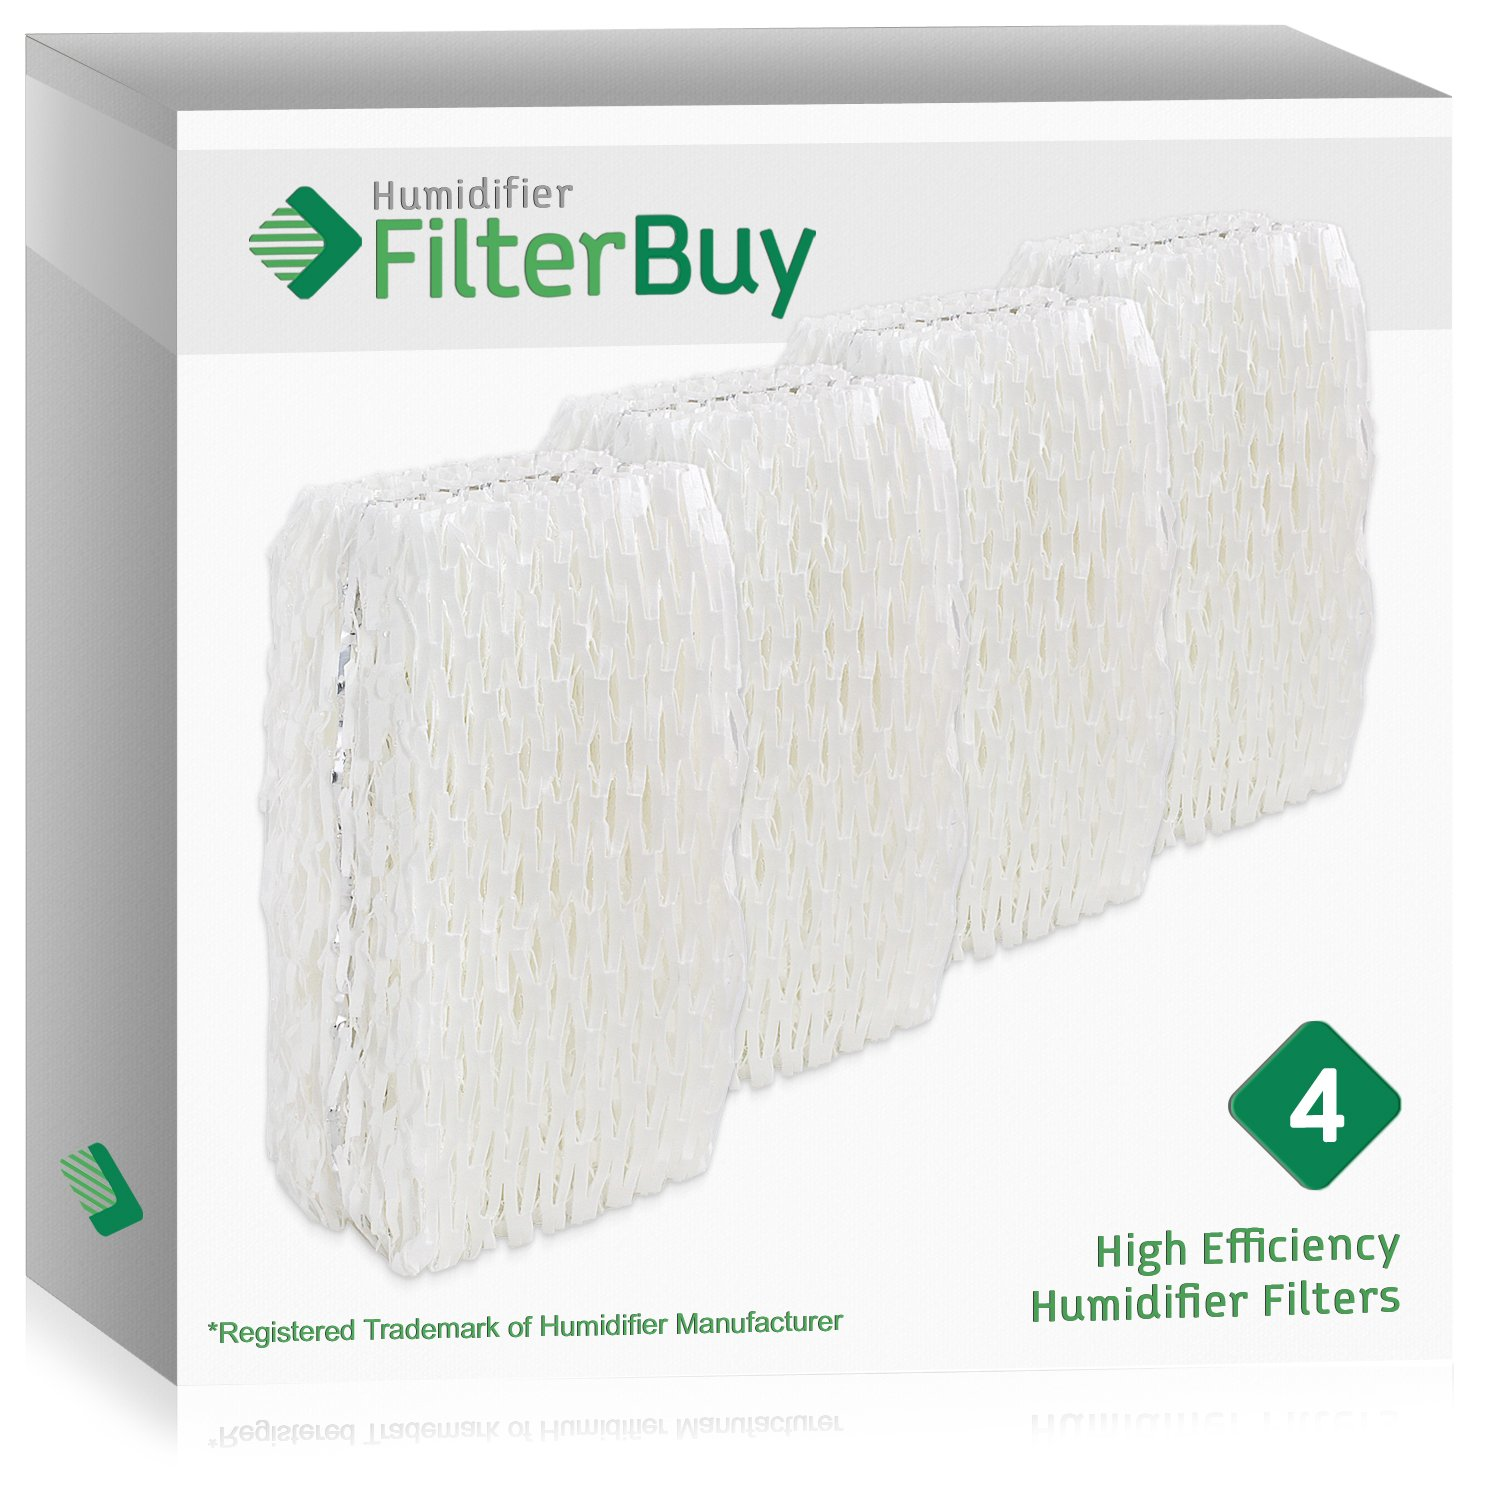 4 - FilterBuy WF813 ReliOn, AC-813 Duracraft , ACR-832 Robitussin Humidifier Wick Replacement Filters. Designed by FilterBuy to fit ReliOn RCM832 (RCM-832) RCM-832N, DH-832 and DH-830 Humidifers.